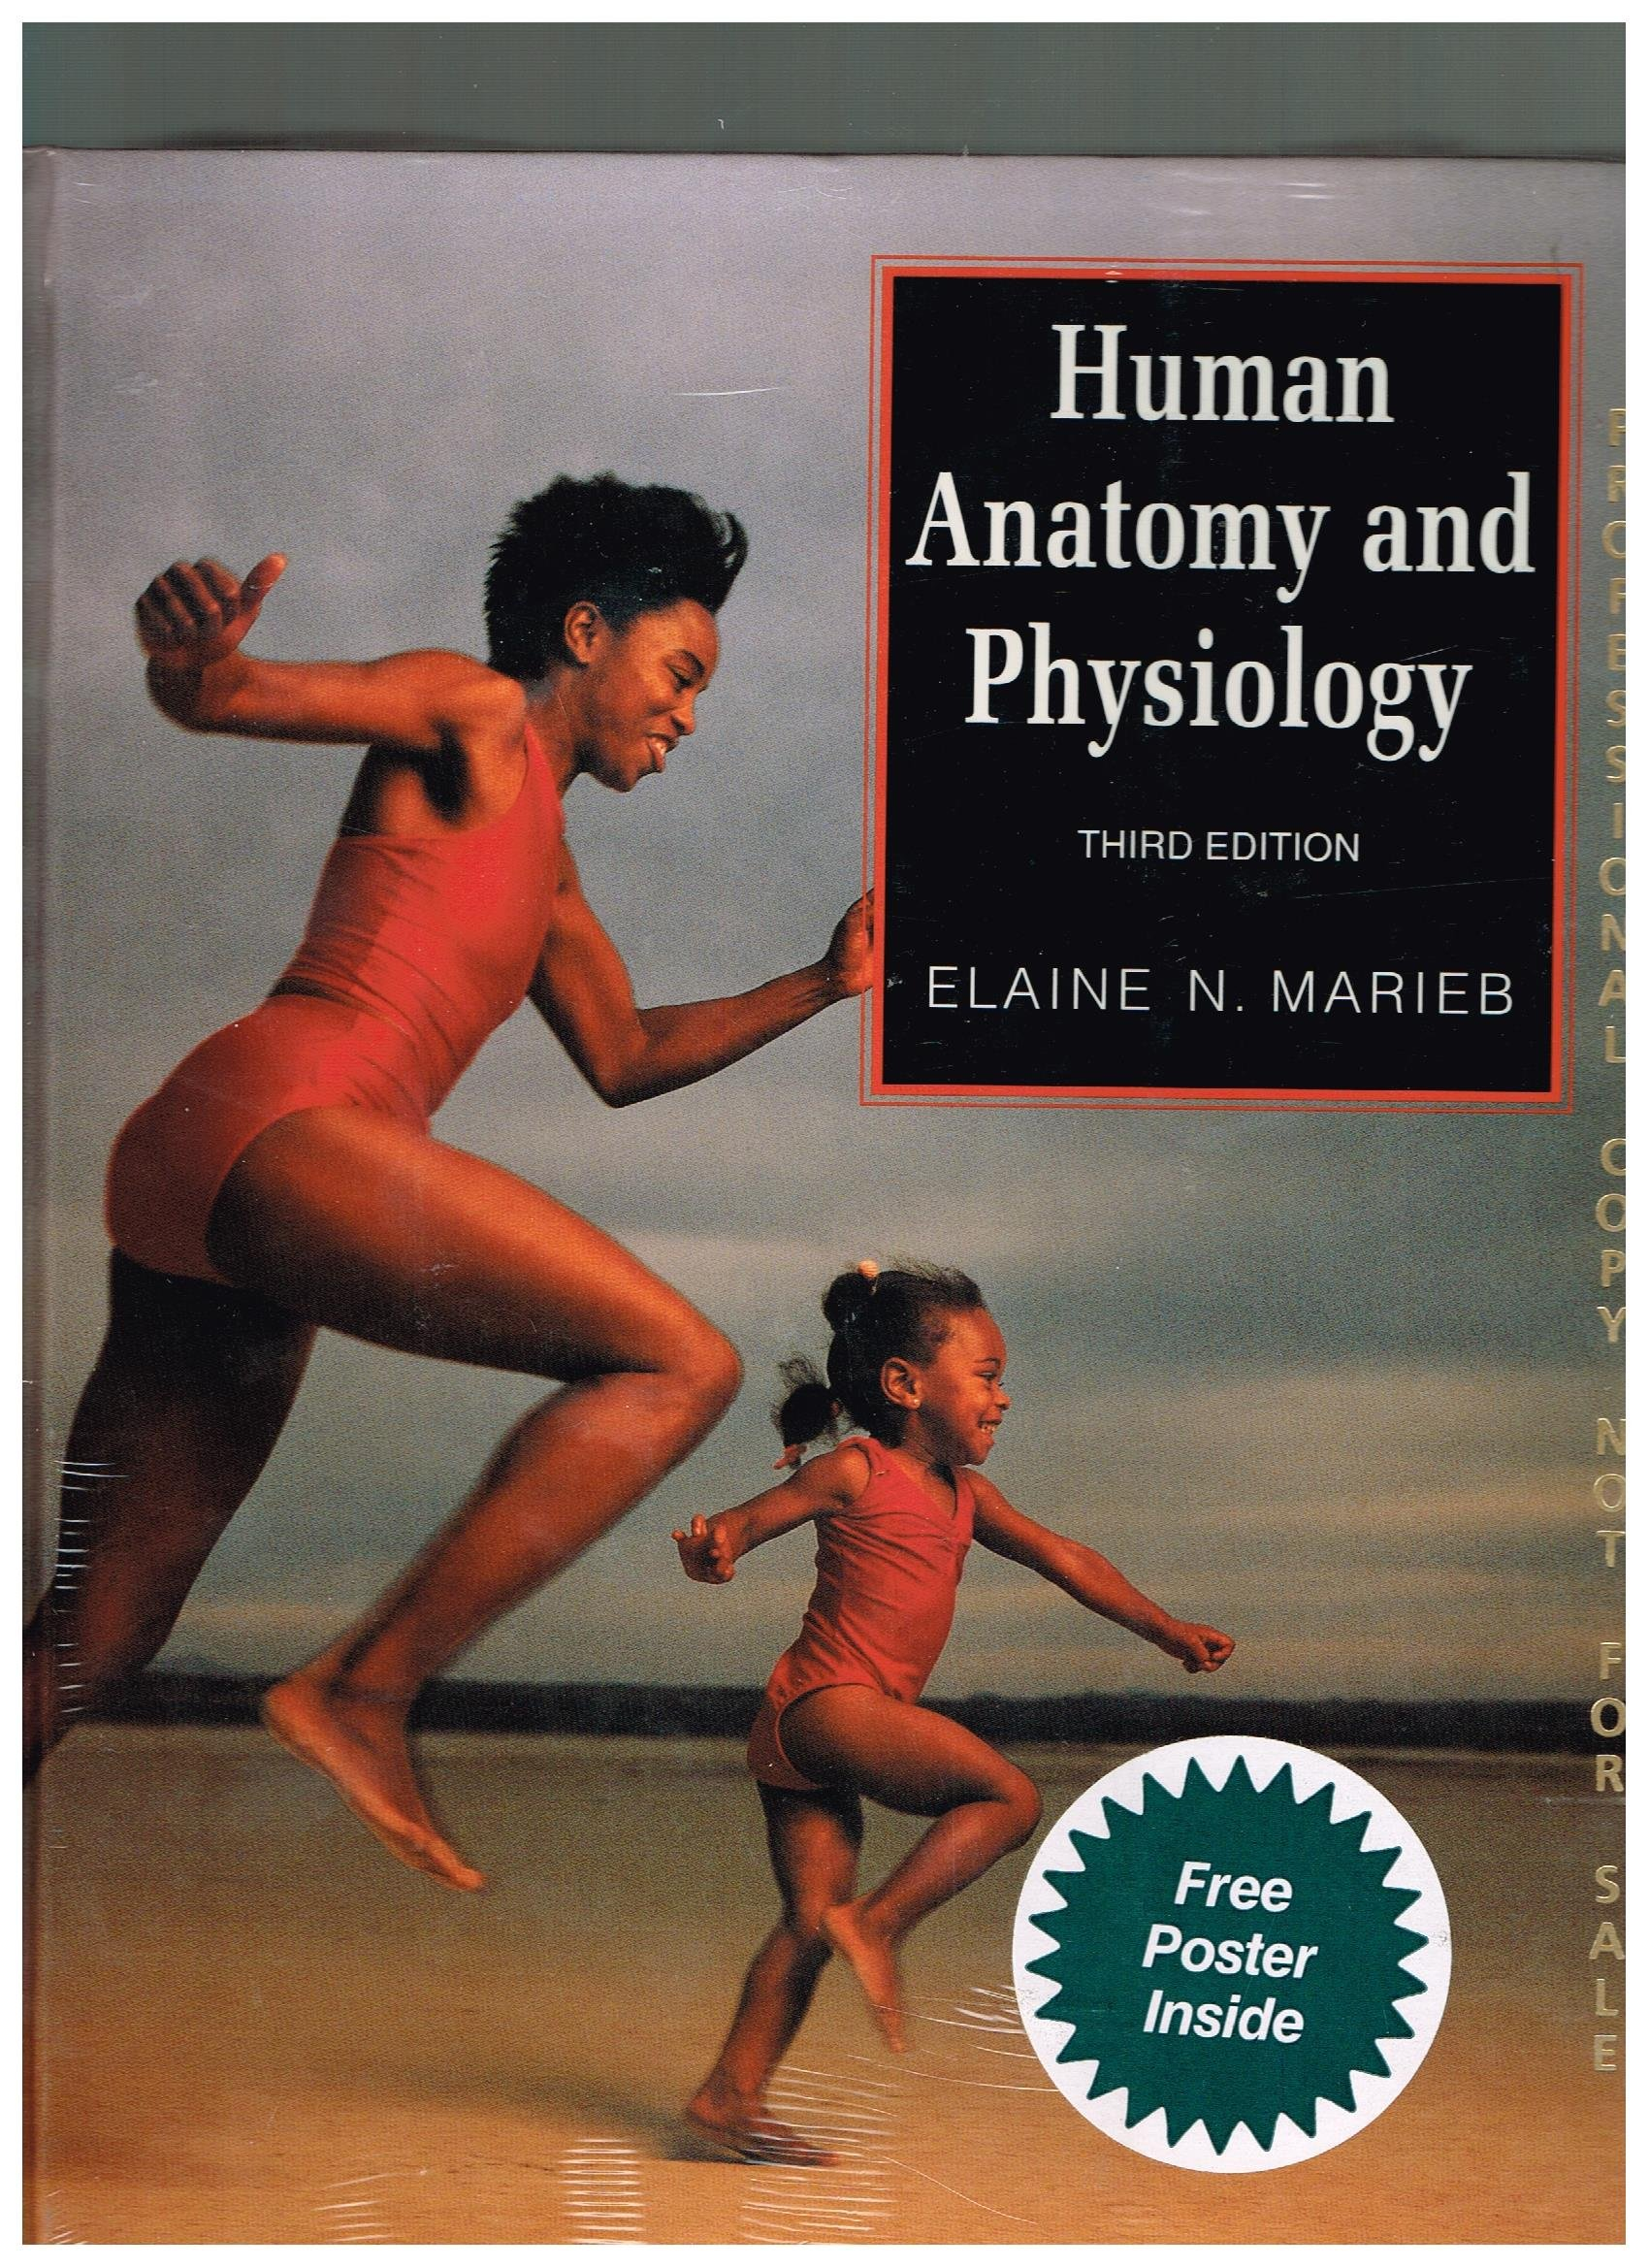 Human Anatomy and Physiology third edition: Amazon.com: Books